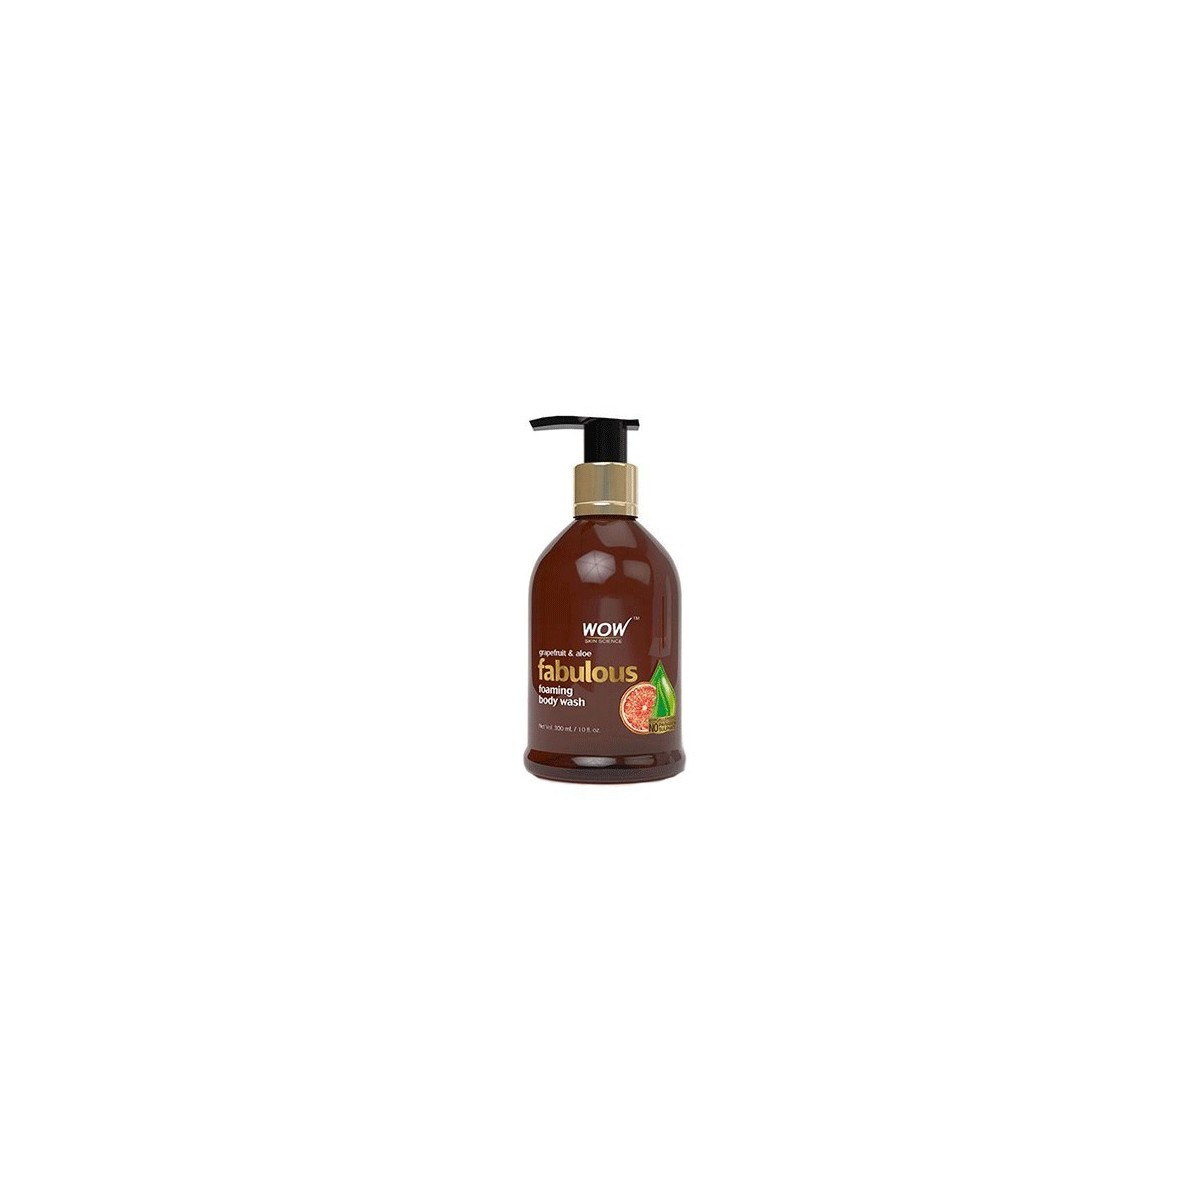 Wow Grapefruit & Aloe Foaming Body Wash - 300 Ml